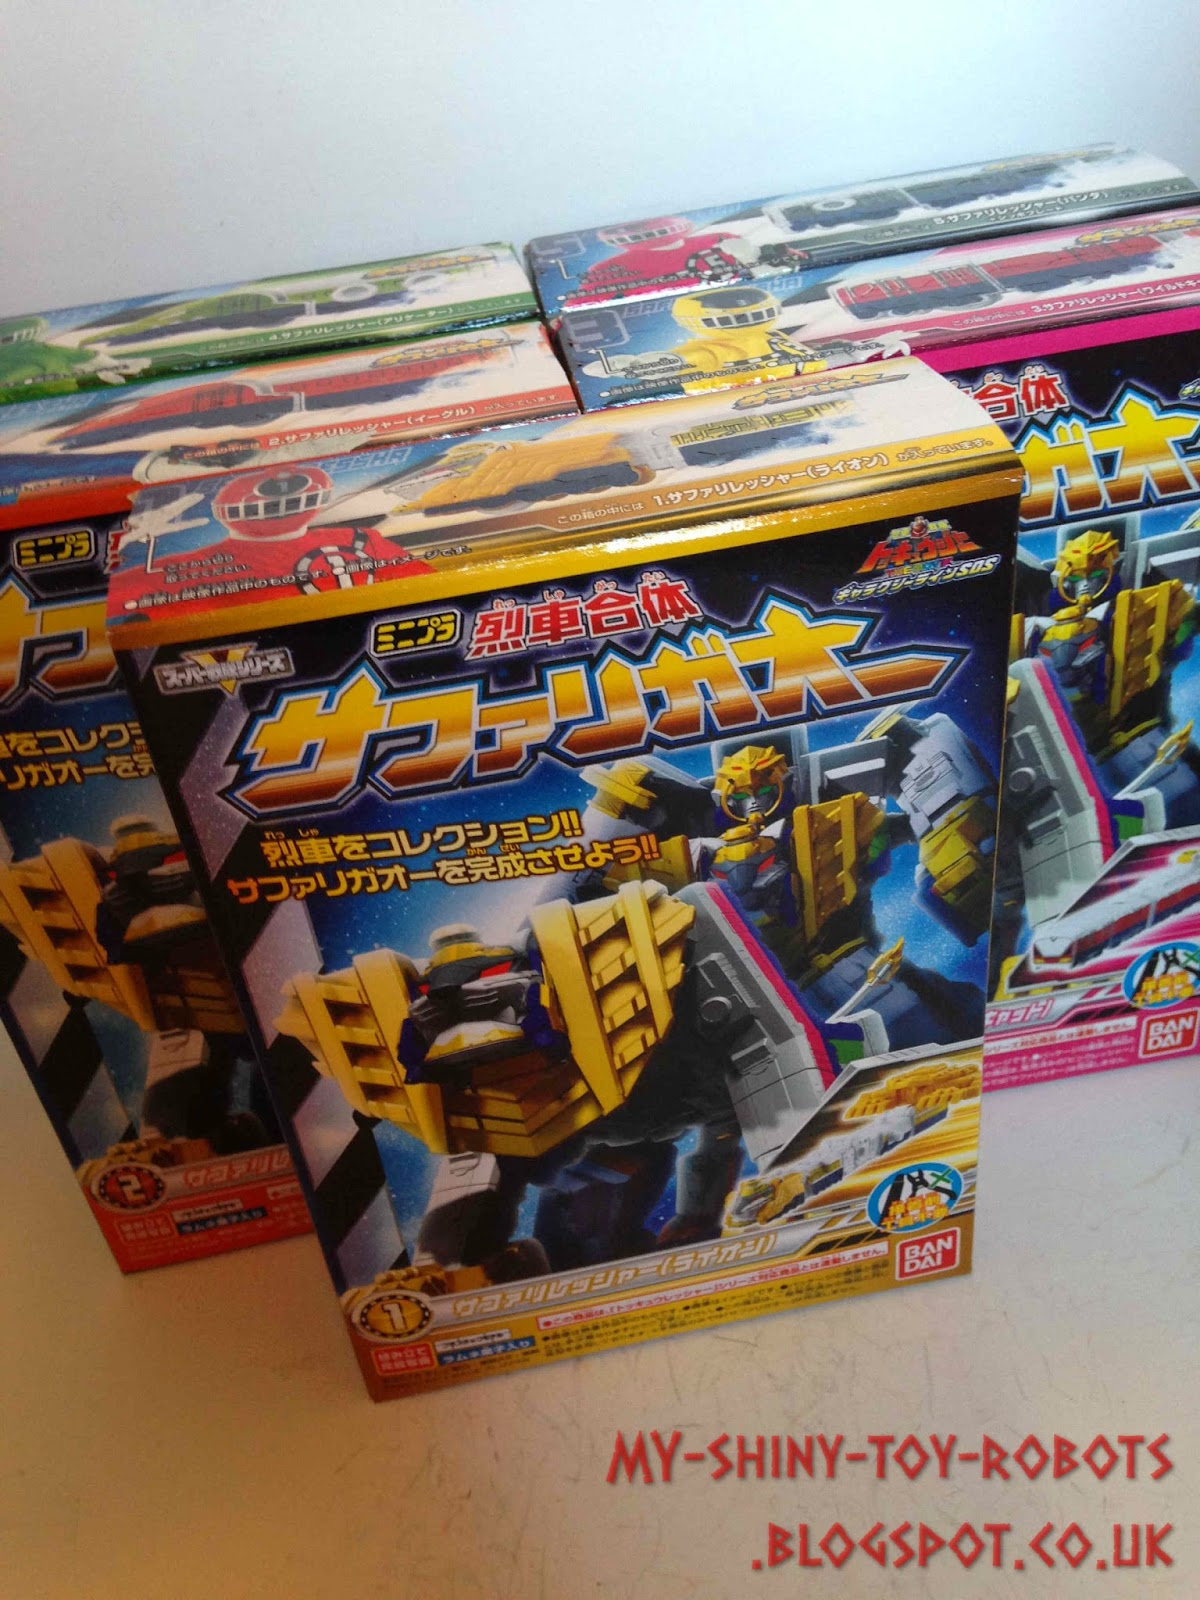 The five model kits in their boxes